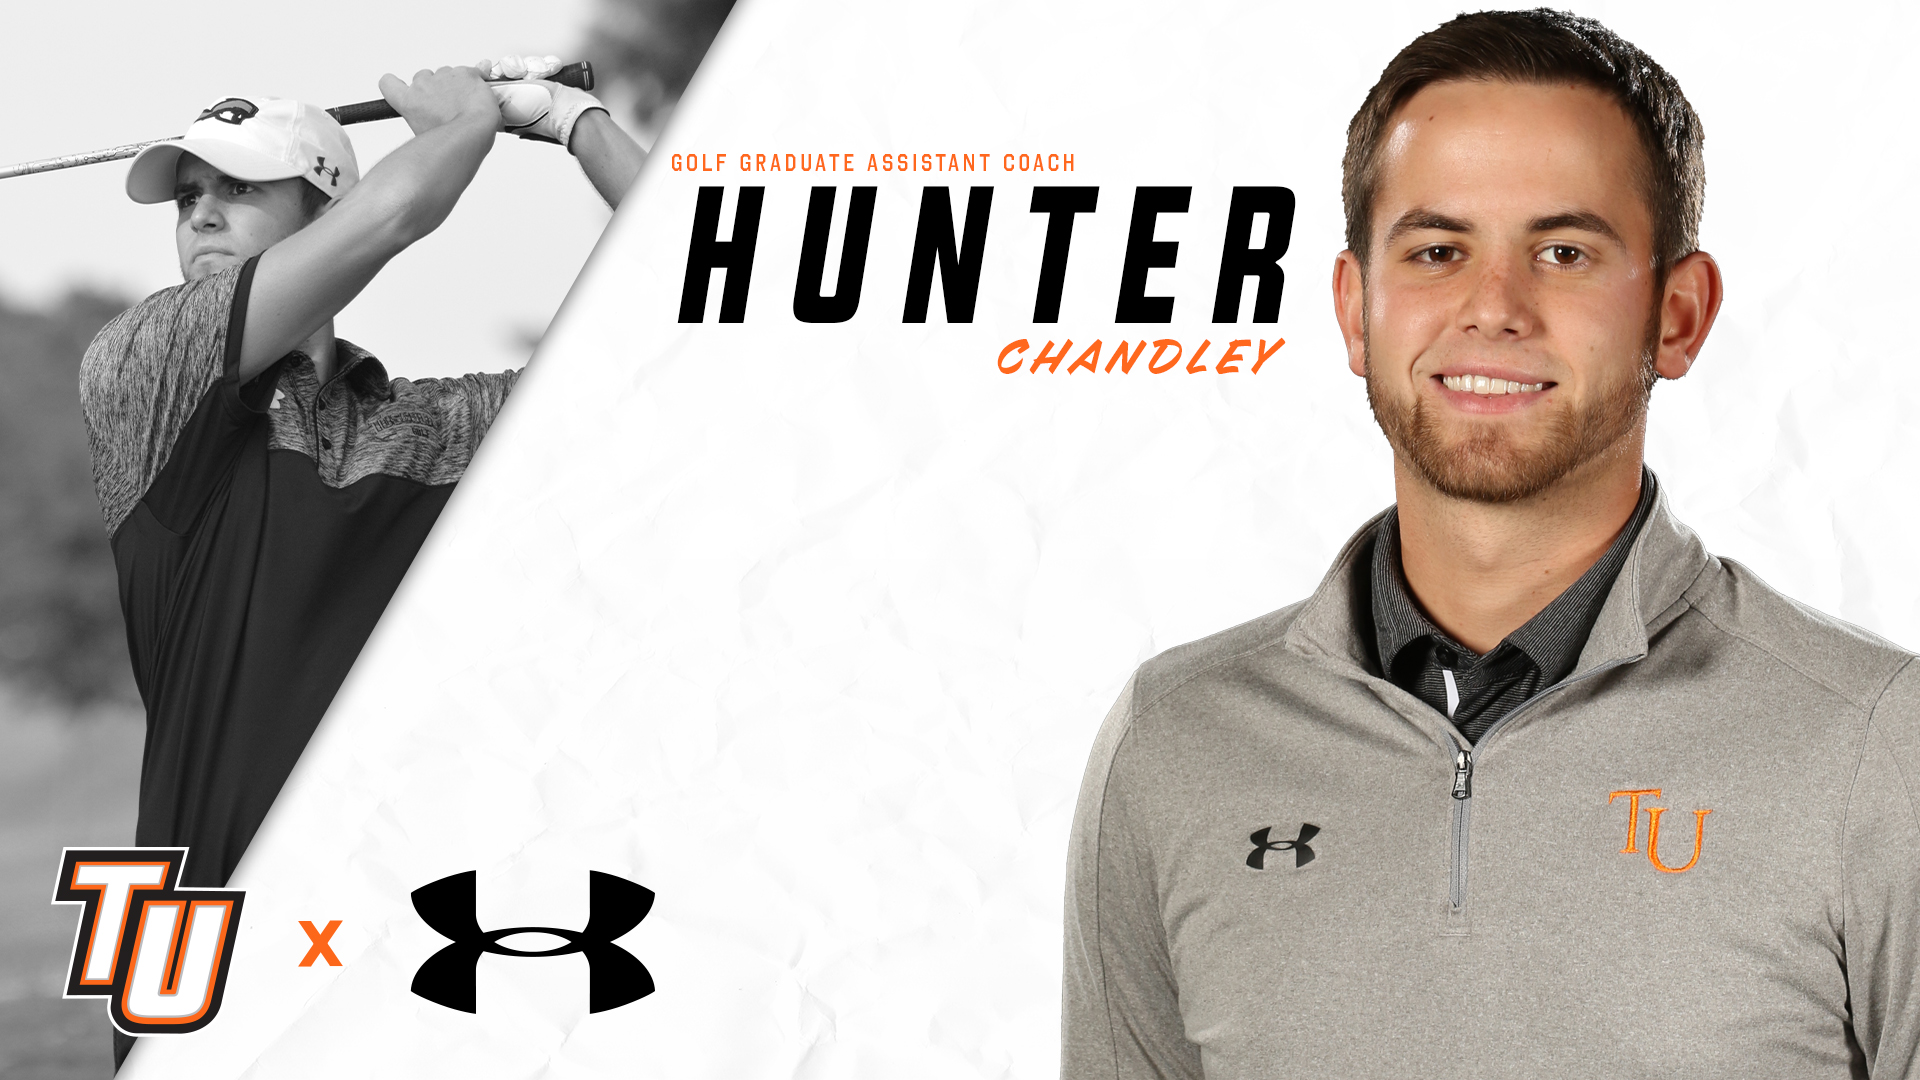 Chandley to serve as graduate assistant golf coach